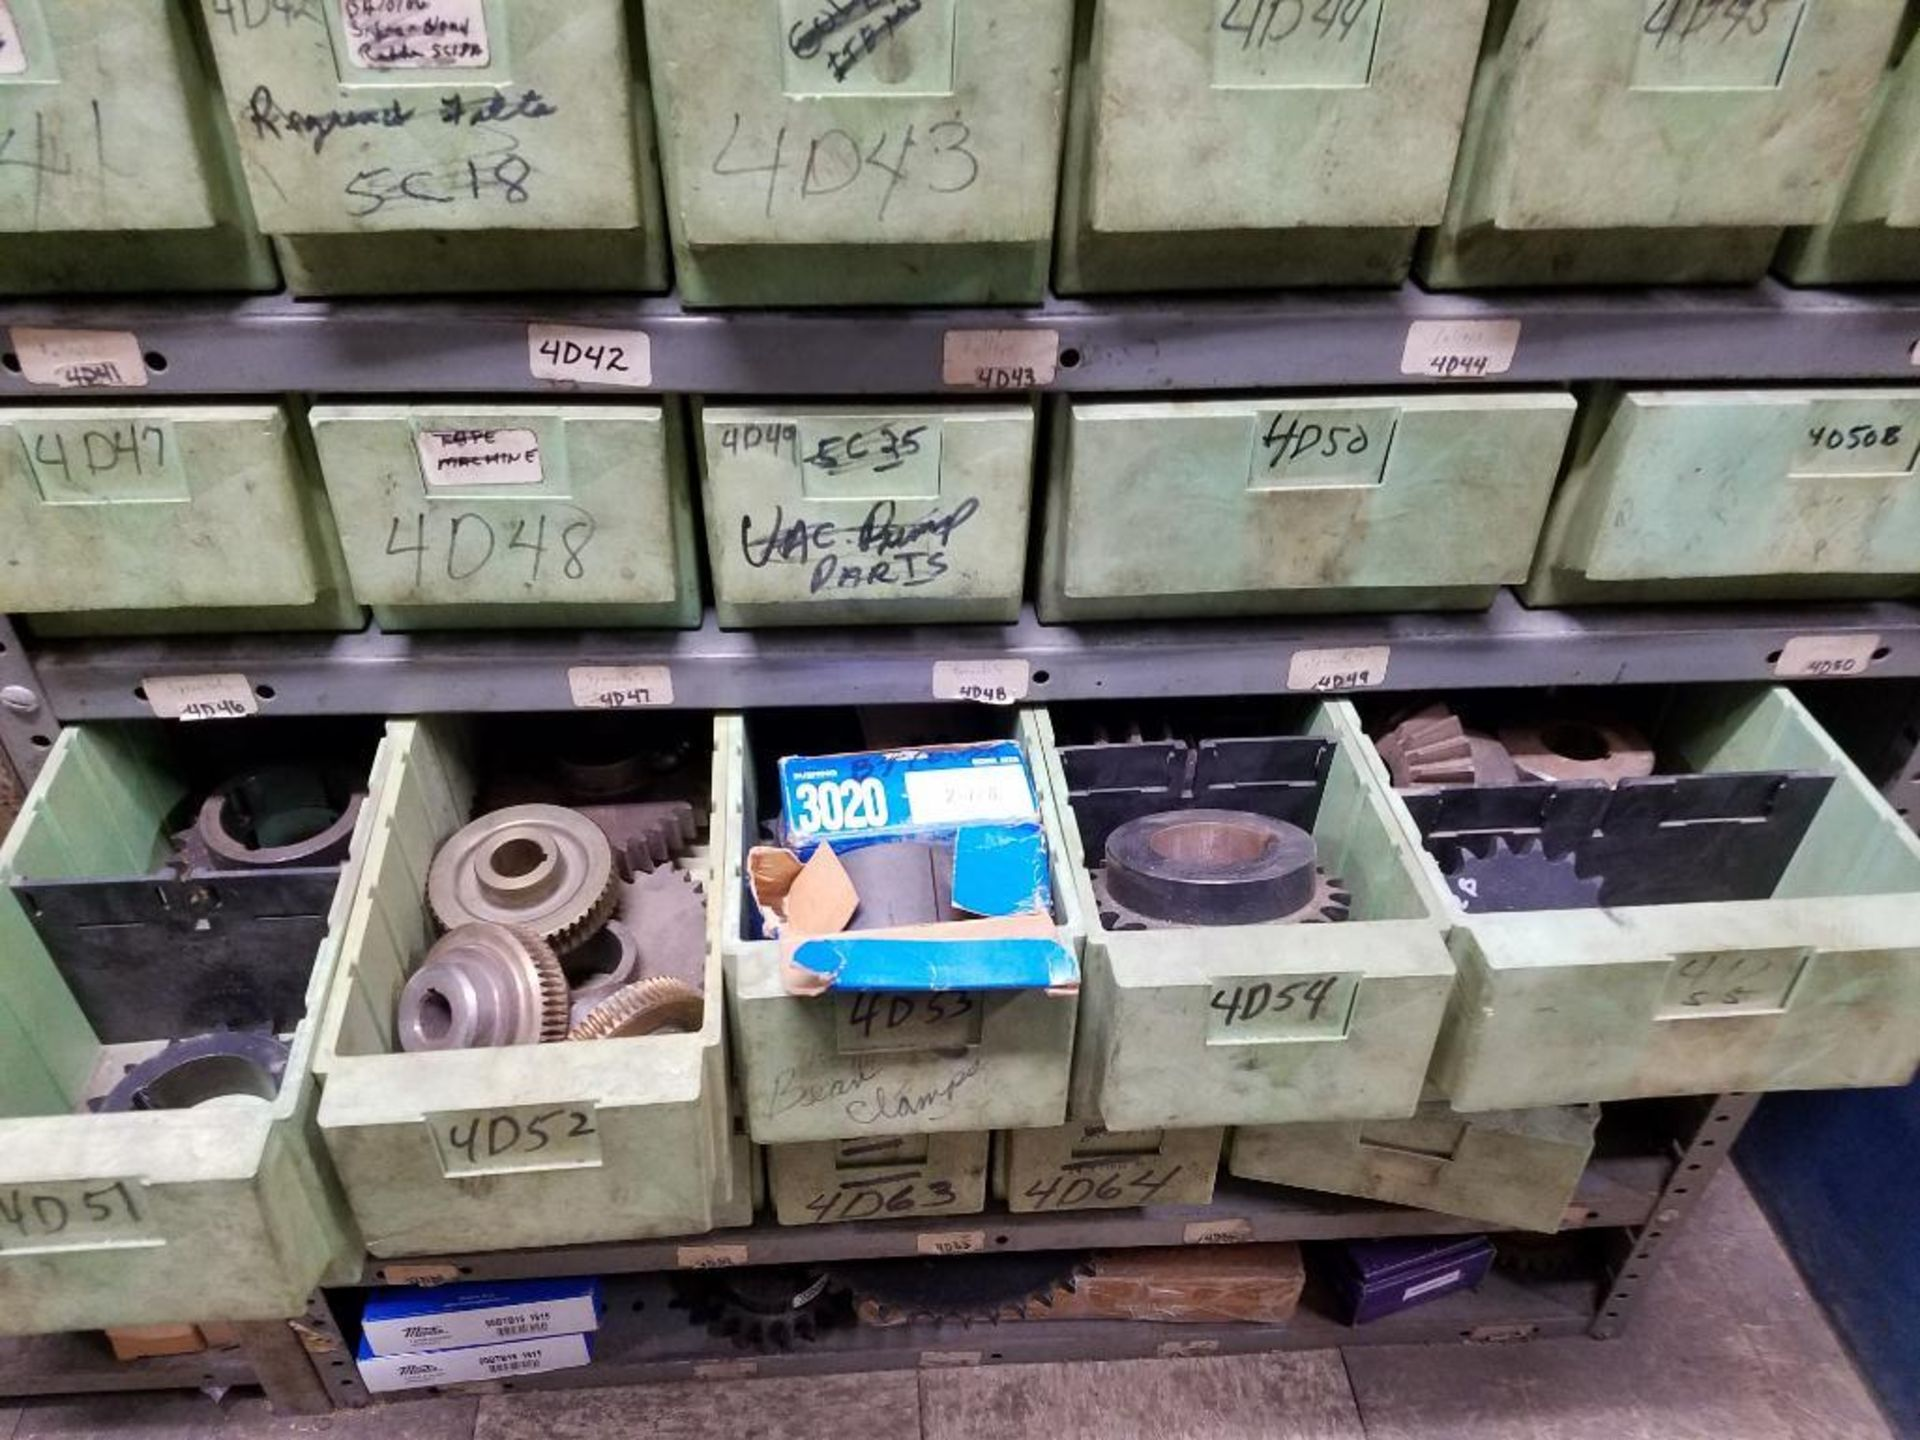 bushings, sheaves, links, chain, couplers, sprockets, and pulleys - Image 5 of 24